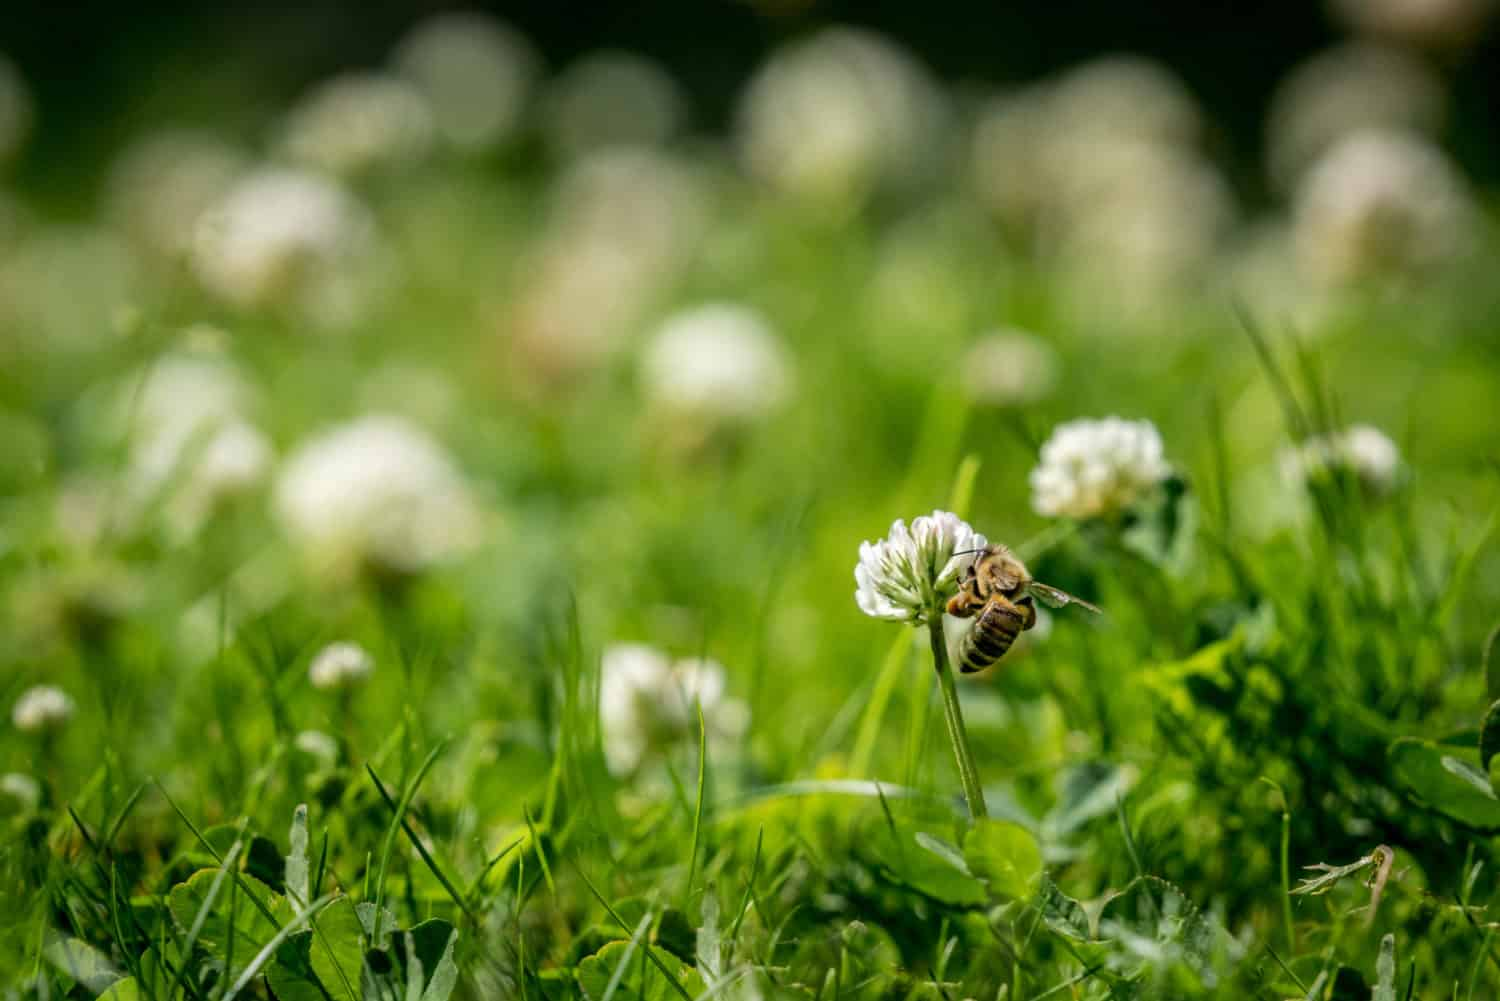 Close up of wild bee next to a clover flower in a lawn